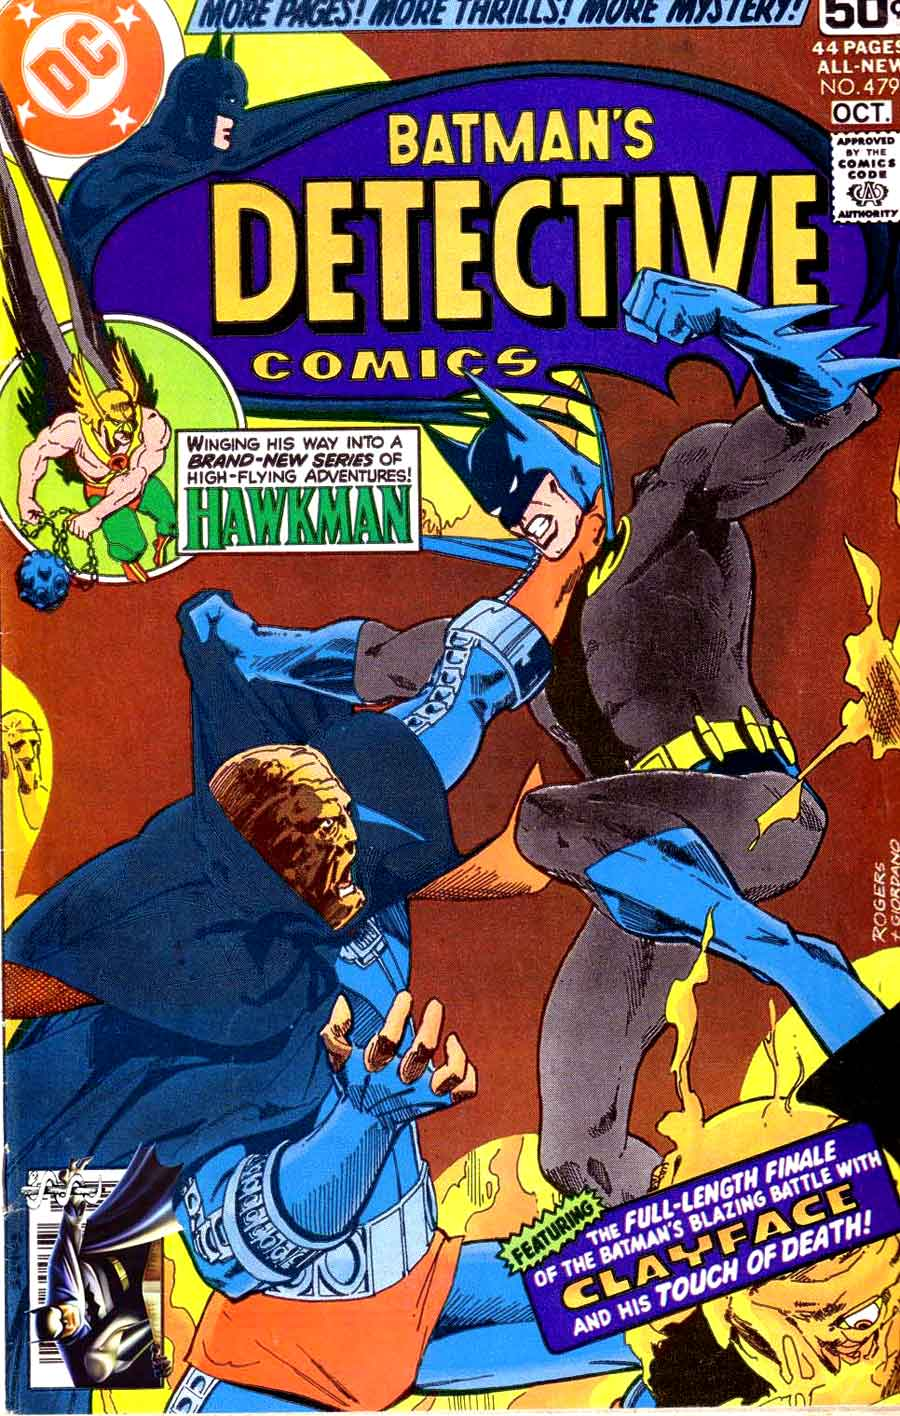 Detective Comics v1 #479 dc comic book cover art by Marshall Rogers